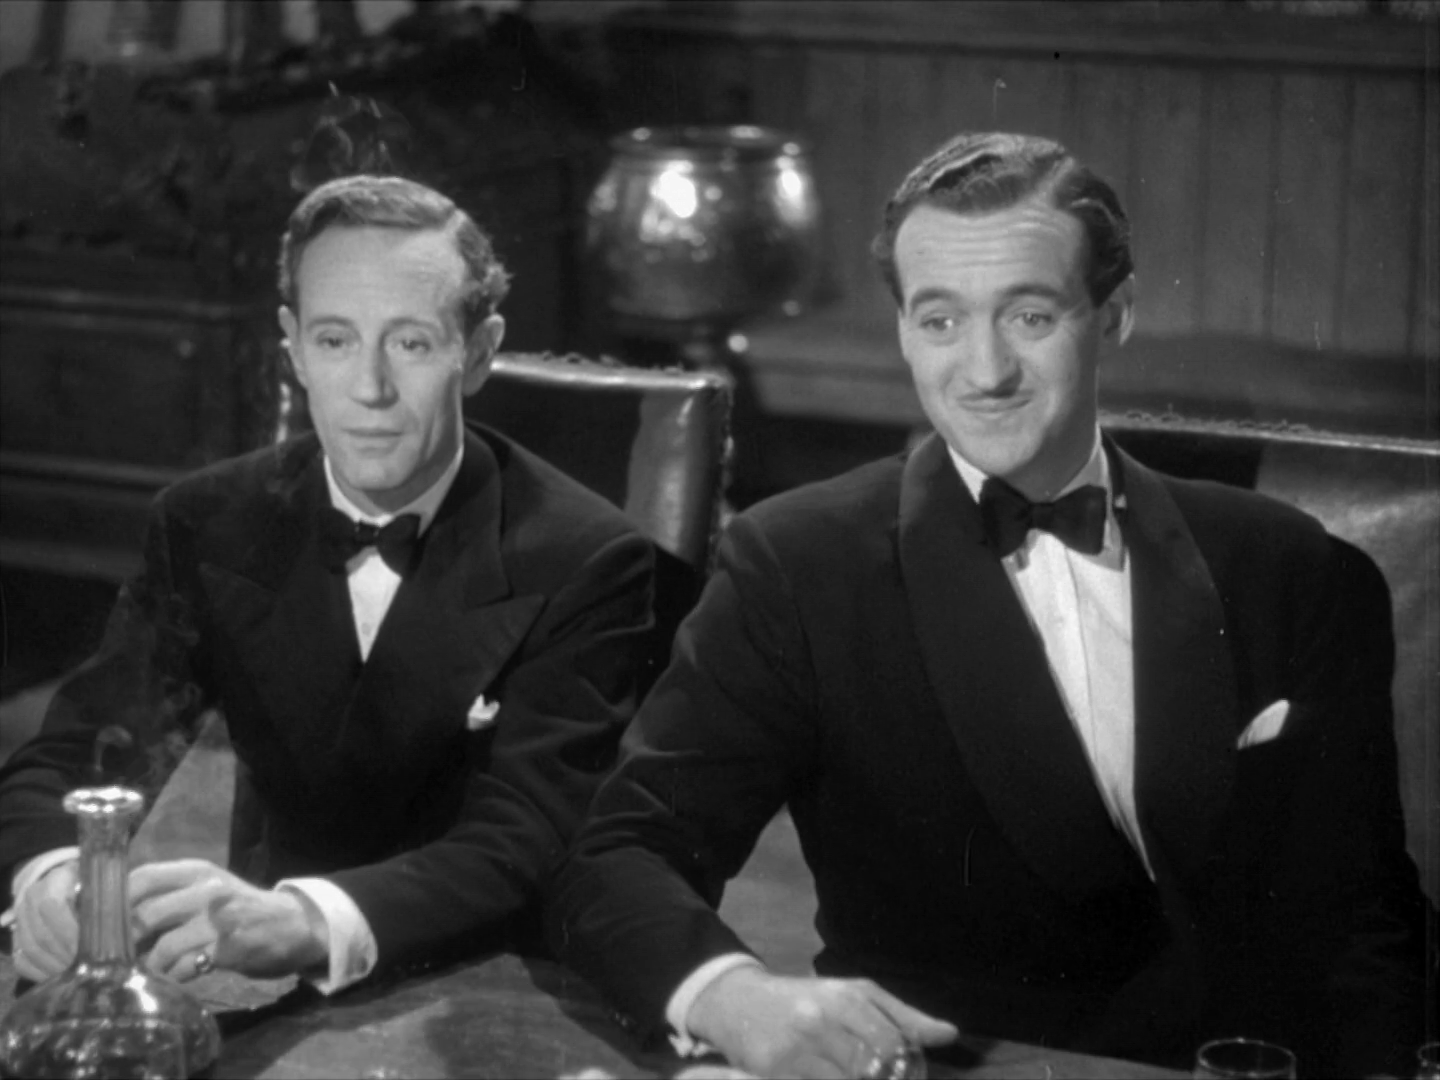 Howard and Niven in dinner attire in  The First of the Few